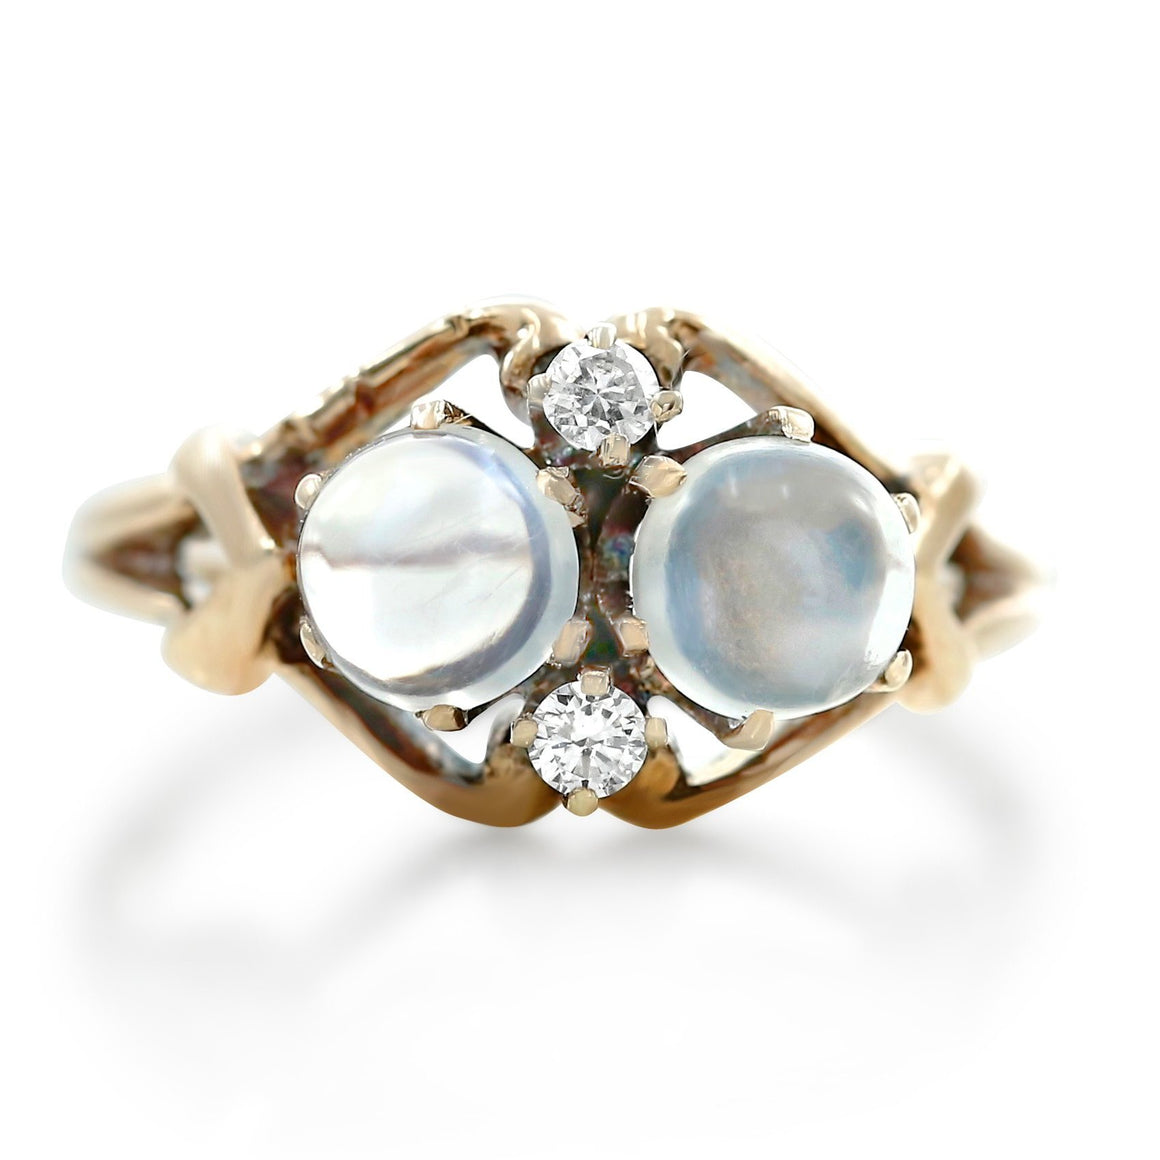 moonstone and diamond art nouveau right hand ring with yellow gold band